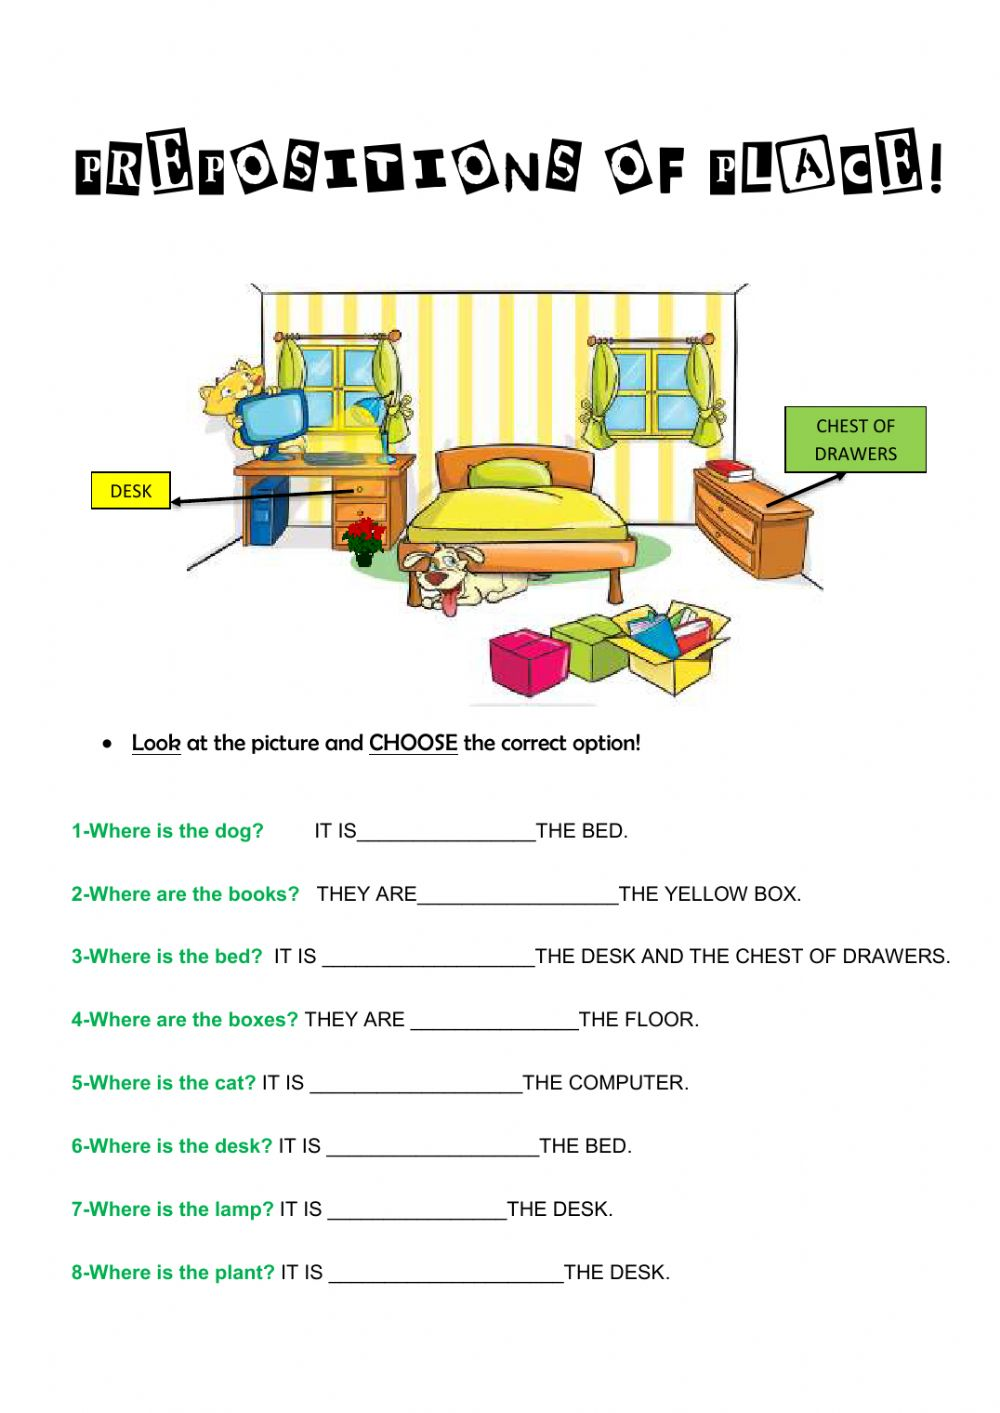 medium resolution of Prepositions of place online exercise for 3rd